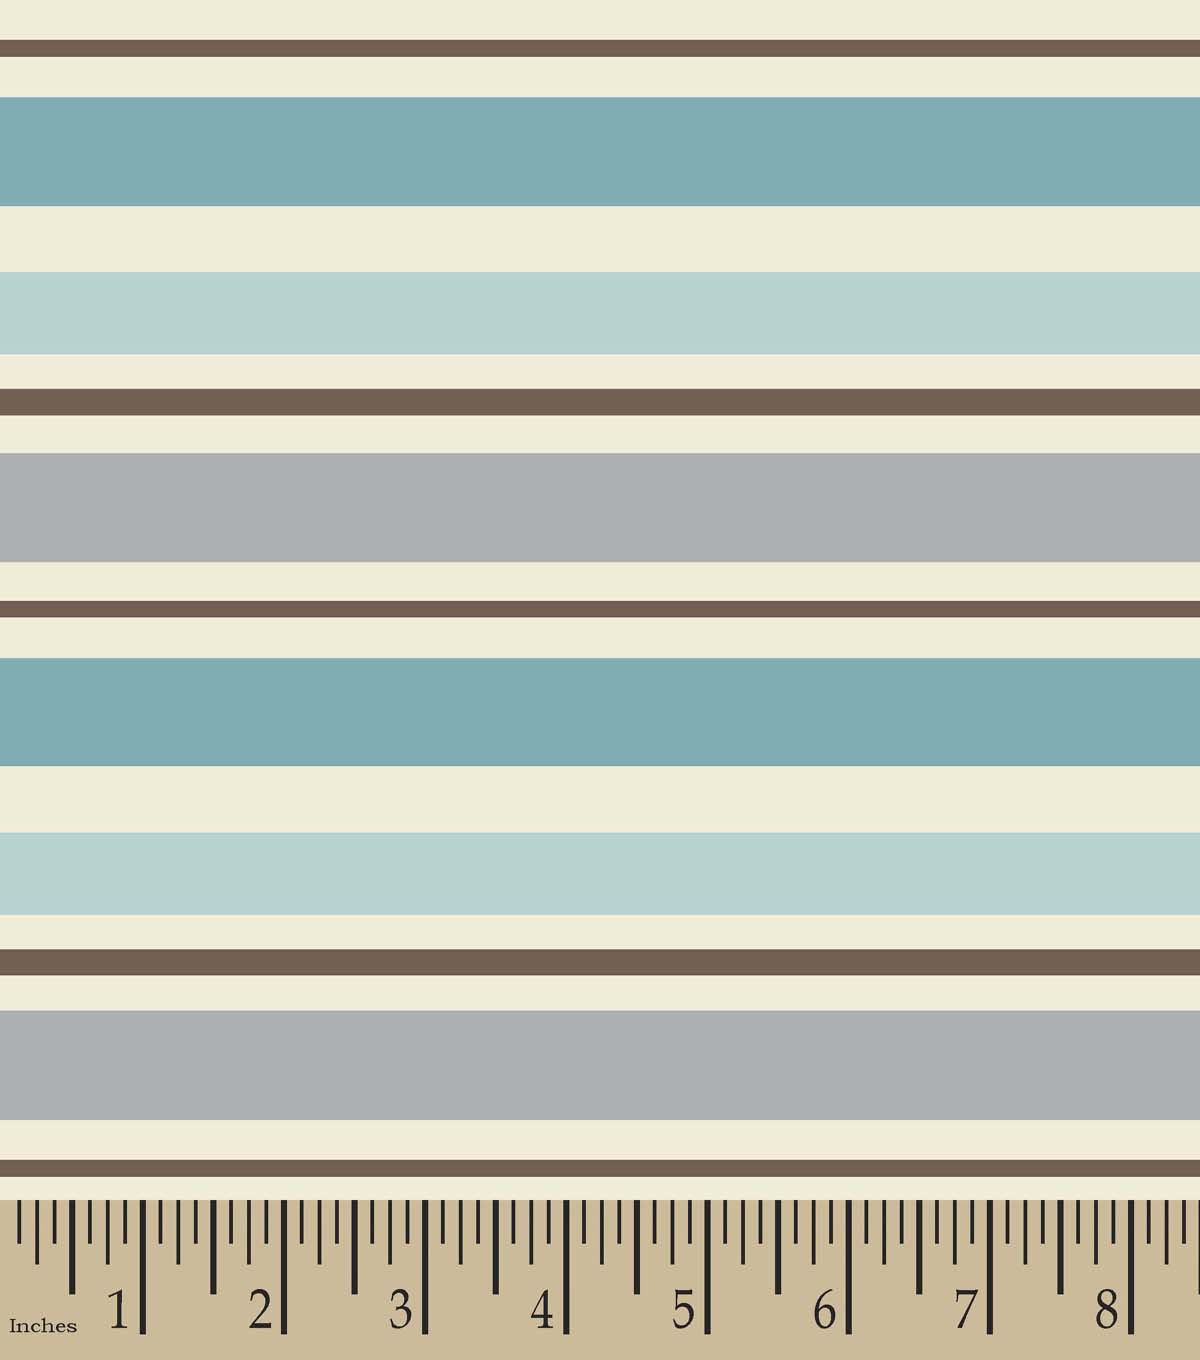 Tan & Teal Striped Print Fabric